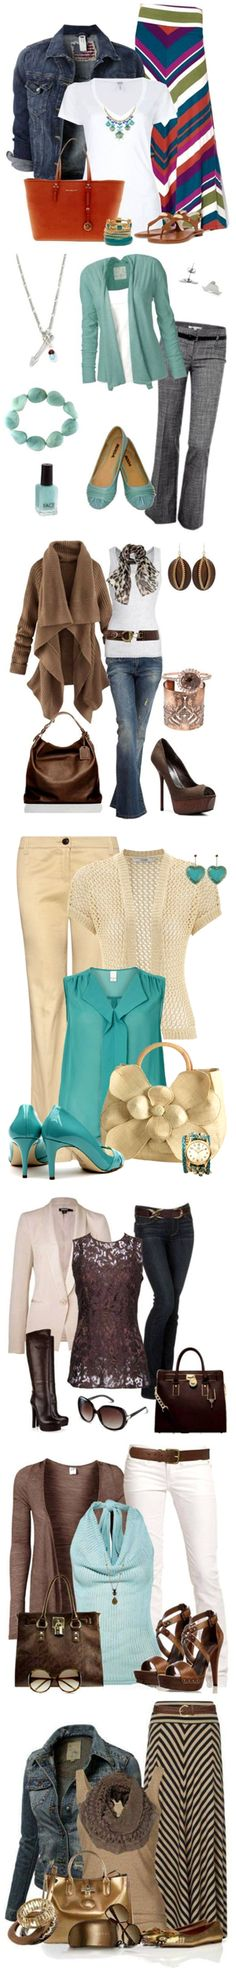 Cool Outfits Cool Outfits, Classy, Cool Stuff, Polyvore, Image, Fashion, Cool Clothes, Dapper Gentleman, Cool Things